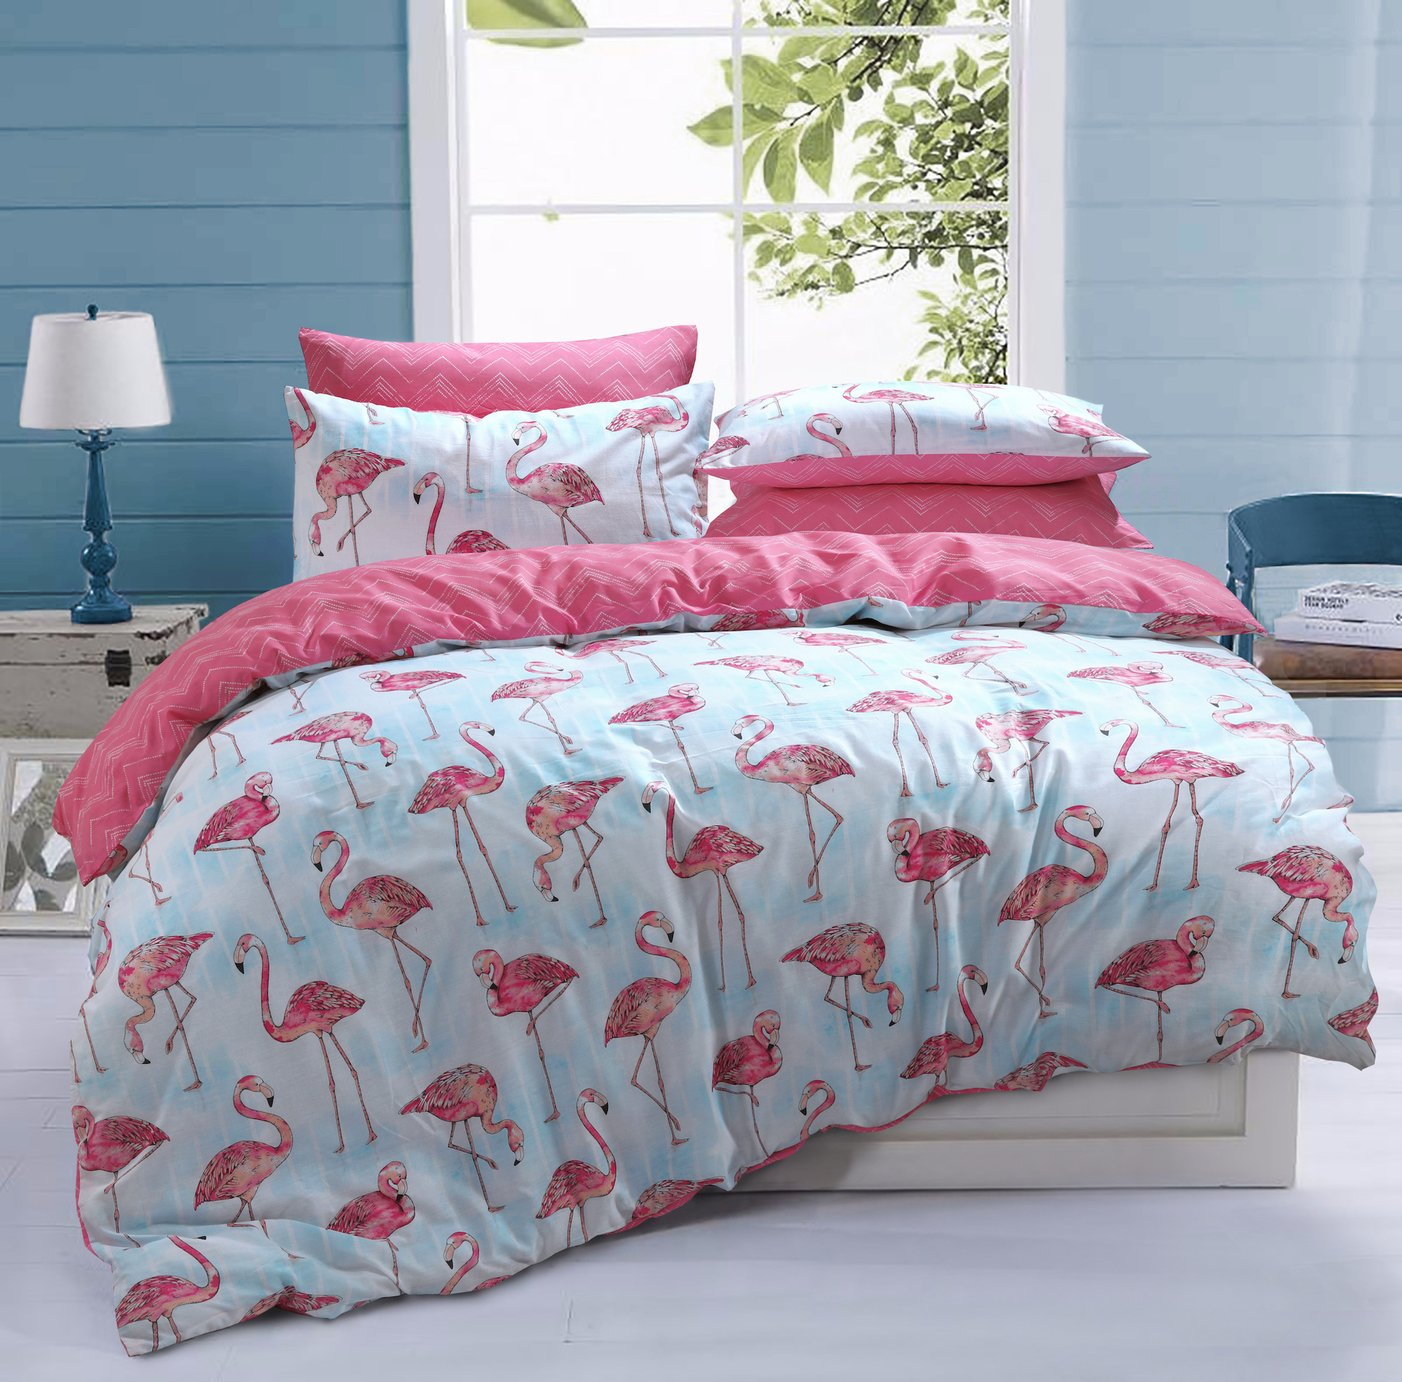 Argos Home Flamingo Stripe Bedding Set - Kingsize